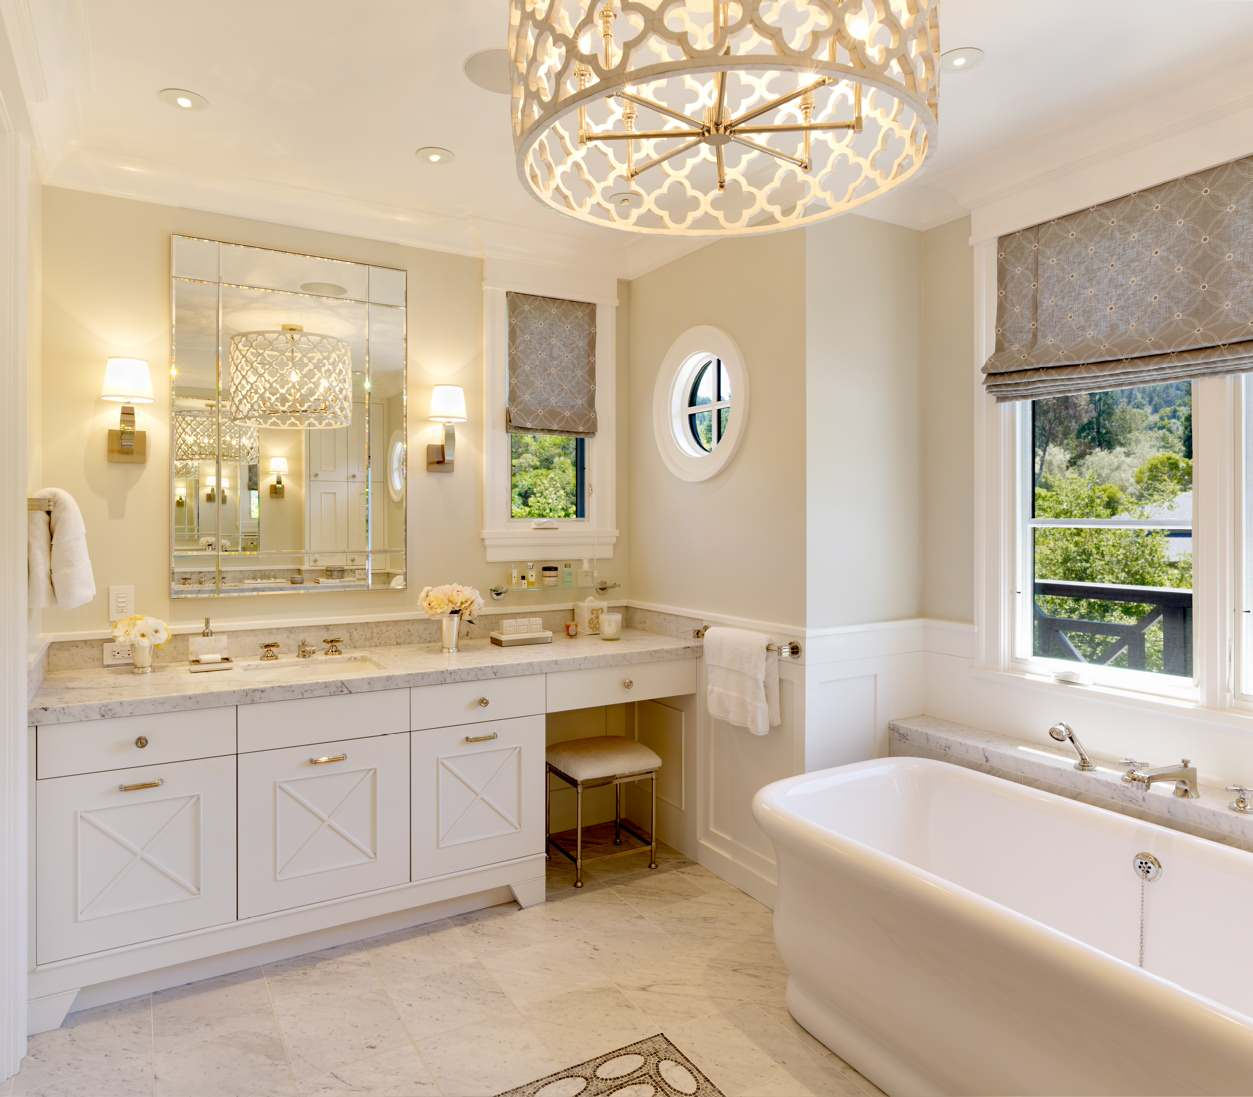 8 Simple Tricks To An Inexpensive Bathroom Makeover